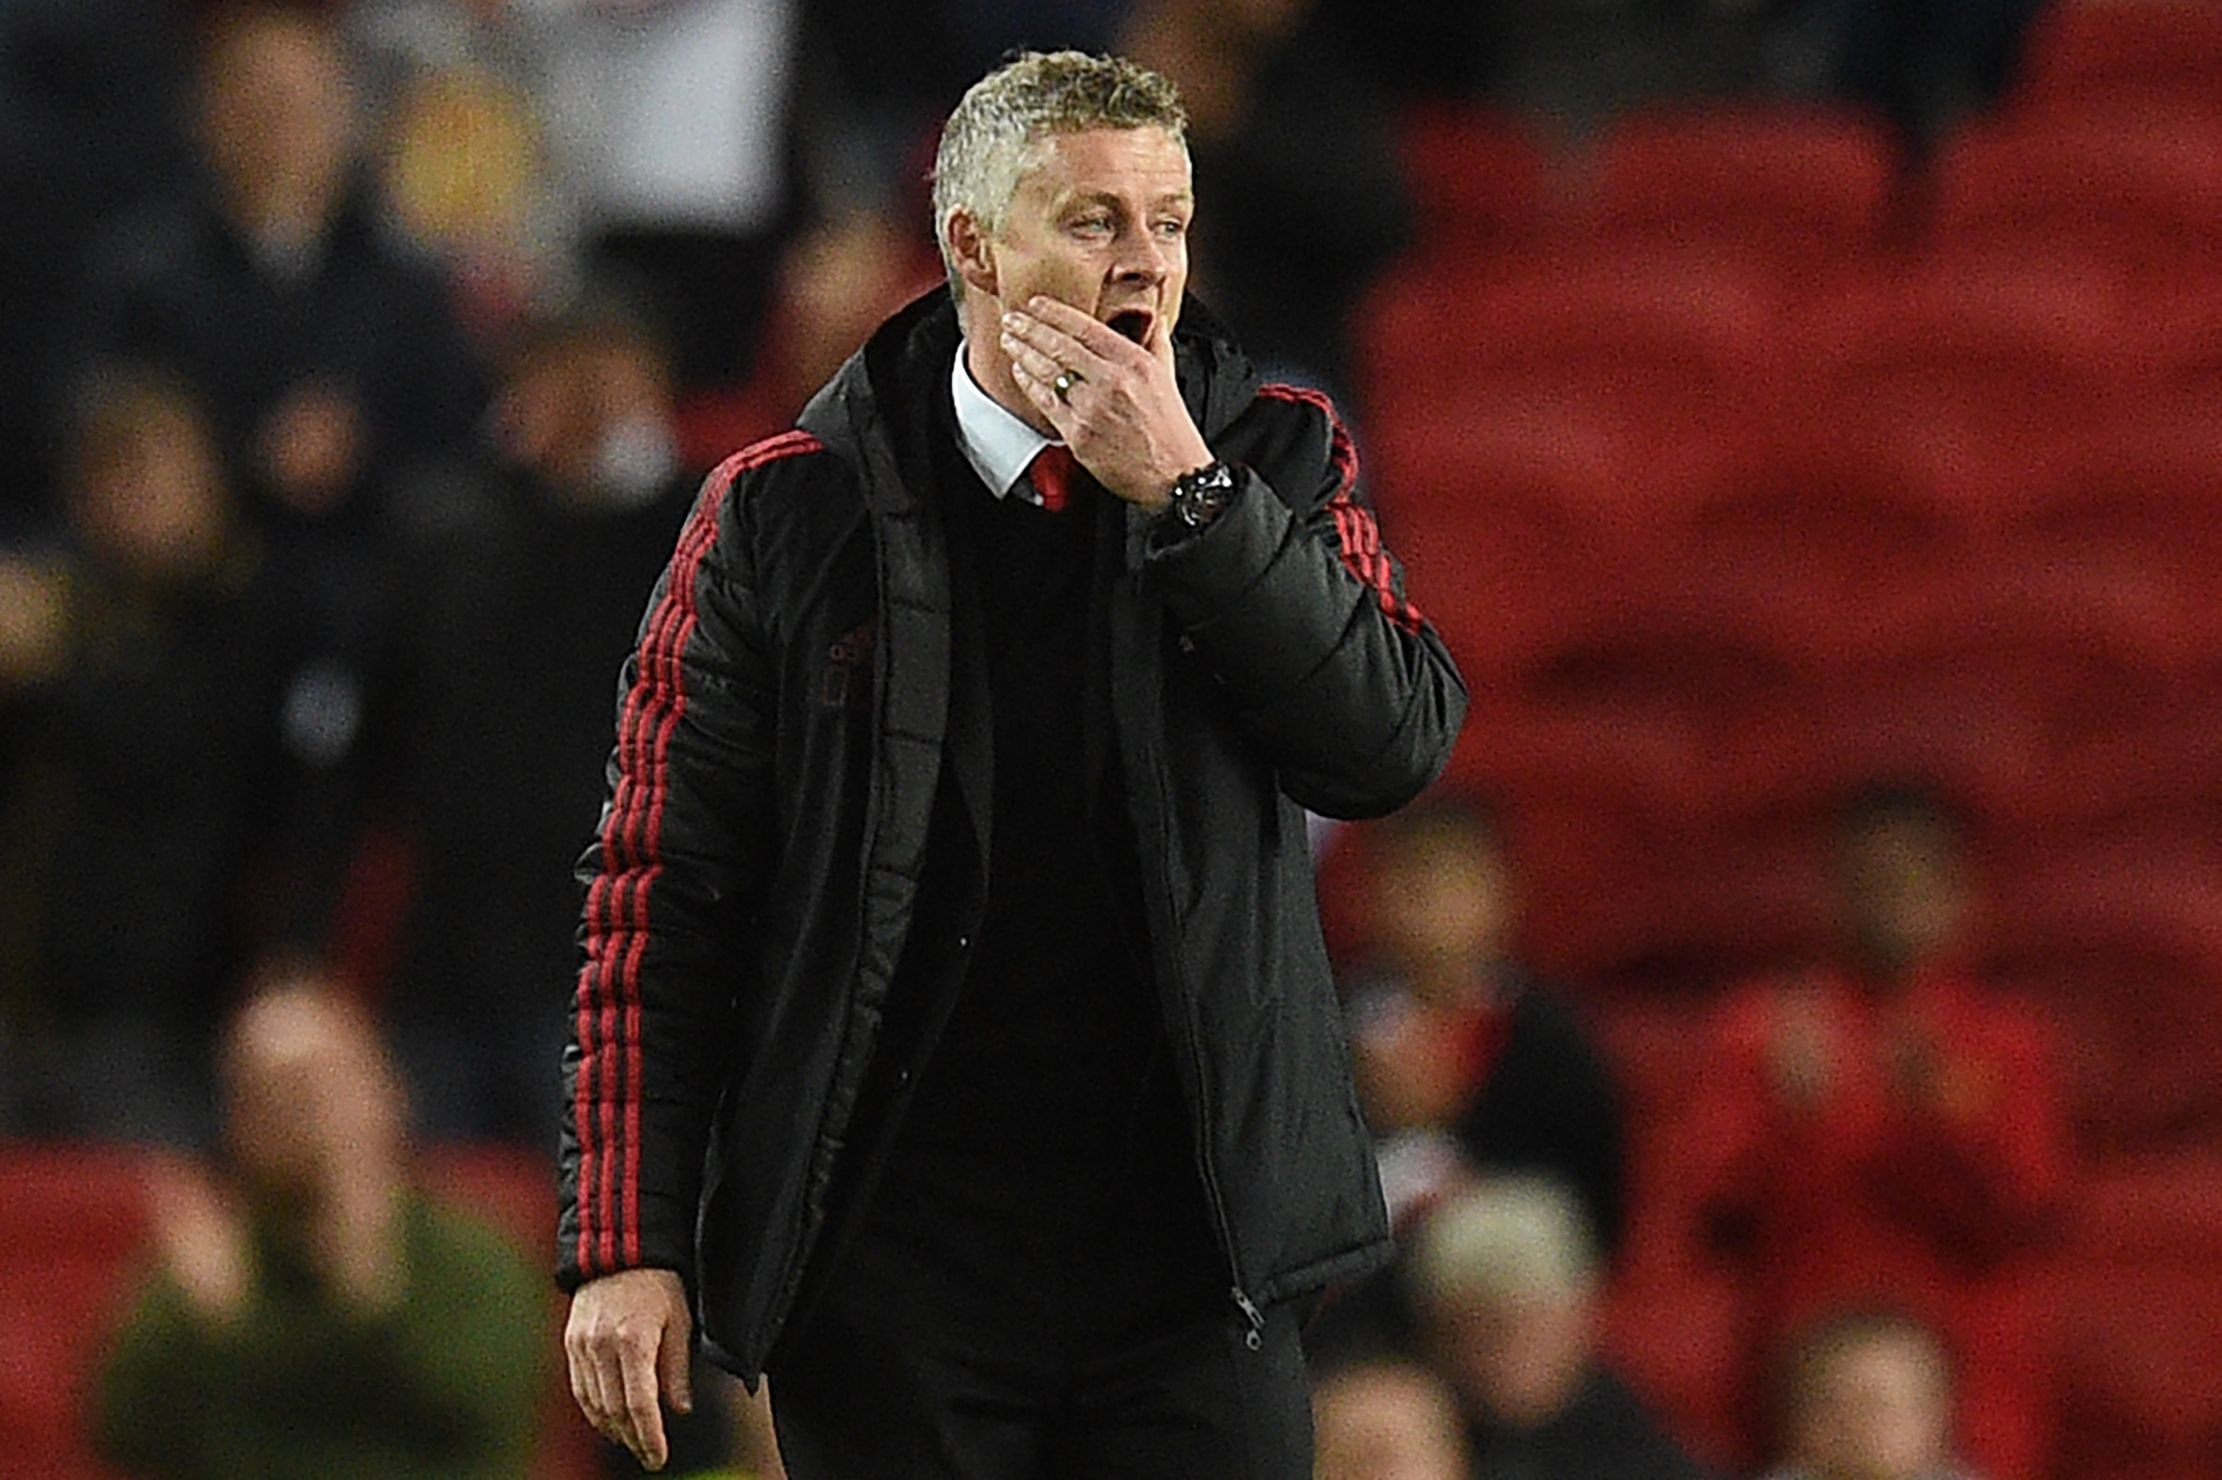 Manchester United's Norwegian manager Ole Gunnar Solskjaer reacts after a English Premier League football compare between Manchester United and Manchester City during Old Trafford in Manchester, north west England, on Apr 24, 2019. - Manchester City won a compare 2-0. (Photo by Oli SCARFF / AFP) / RESTRICTED TO EDITORIAL USE. No use with unapproved audio, video, data, tie lists, club/league logos or 'live' services. Online in-match use singular to 120 images. An additional 40 images might be used in additional time. No video emulation. Social media in-match use singular to 120 images. An additional 40 images might be used in additional time. No use in betting publications, games or singular club/league/player publications. / OLI SCARFF/AFP/Getty Images